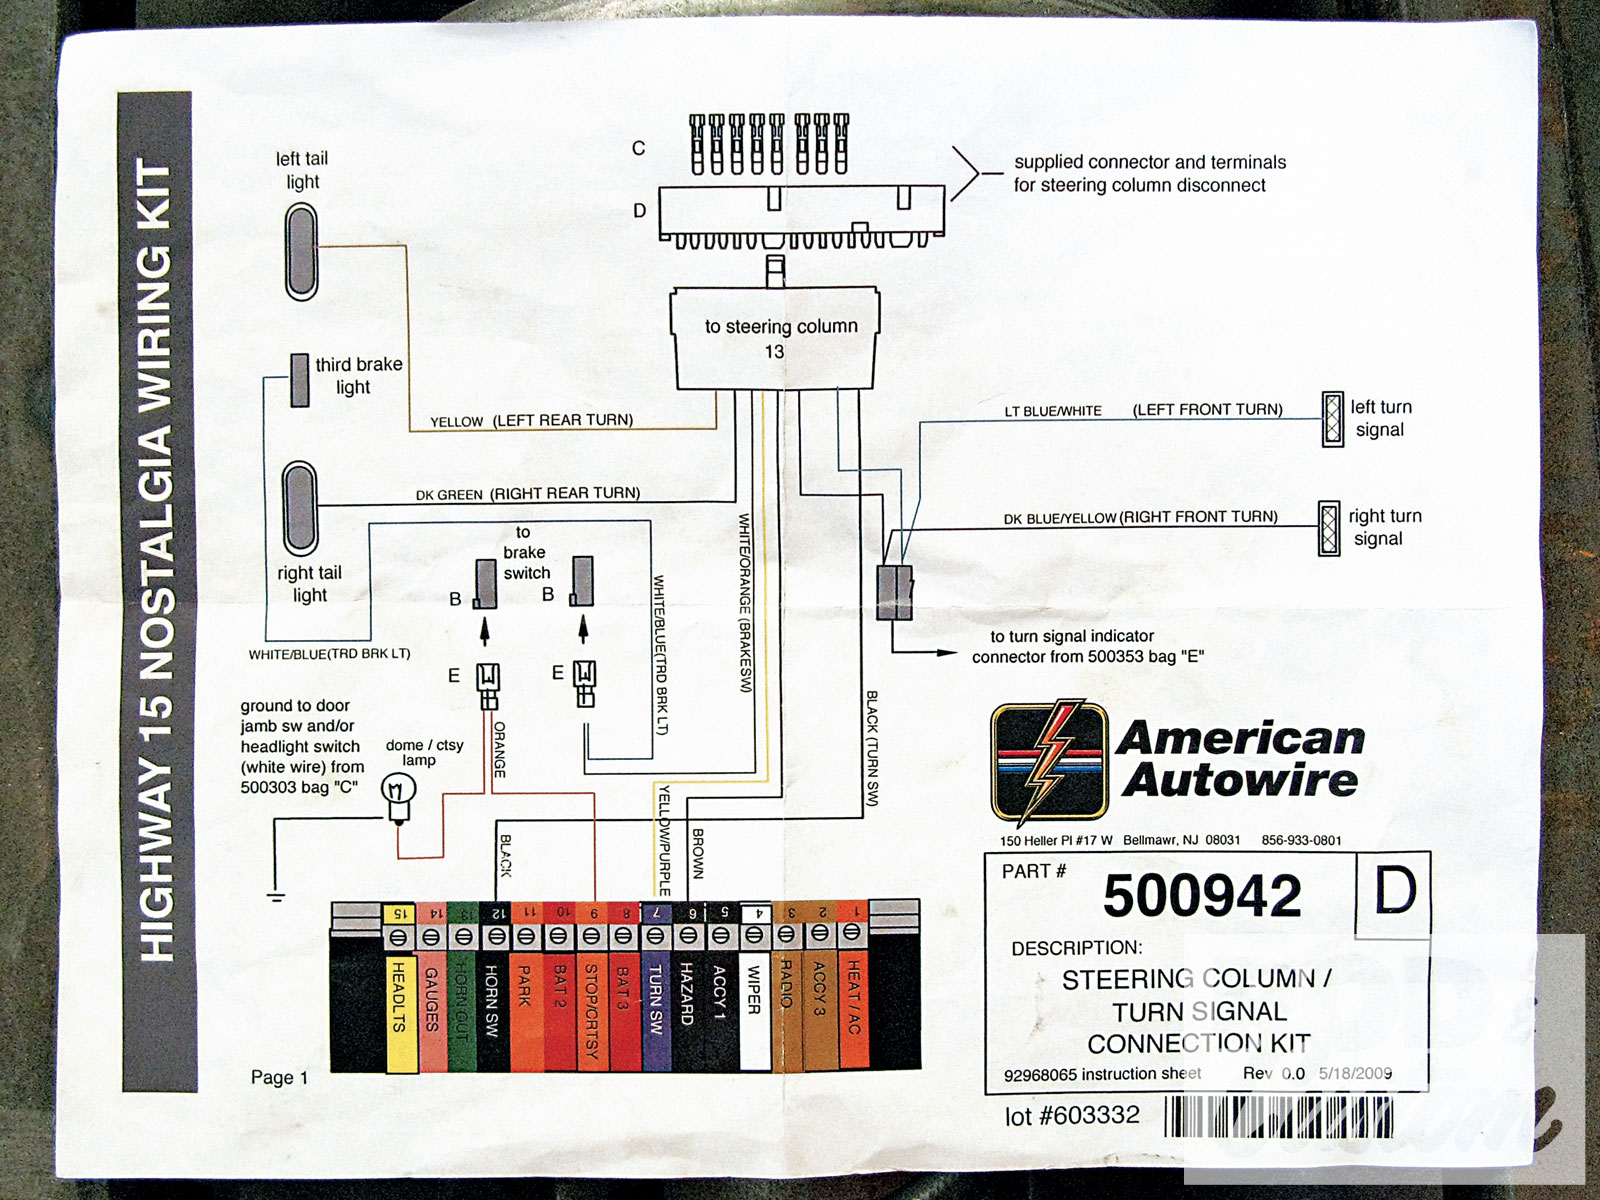 hight resolution of 84 chevy steering column wiring diagram wiring diagram1985 chevy steering column diagram mopar steering column wiring